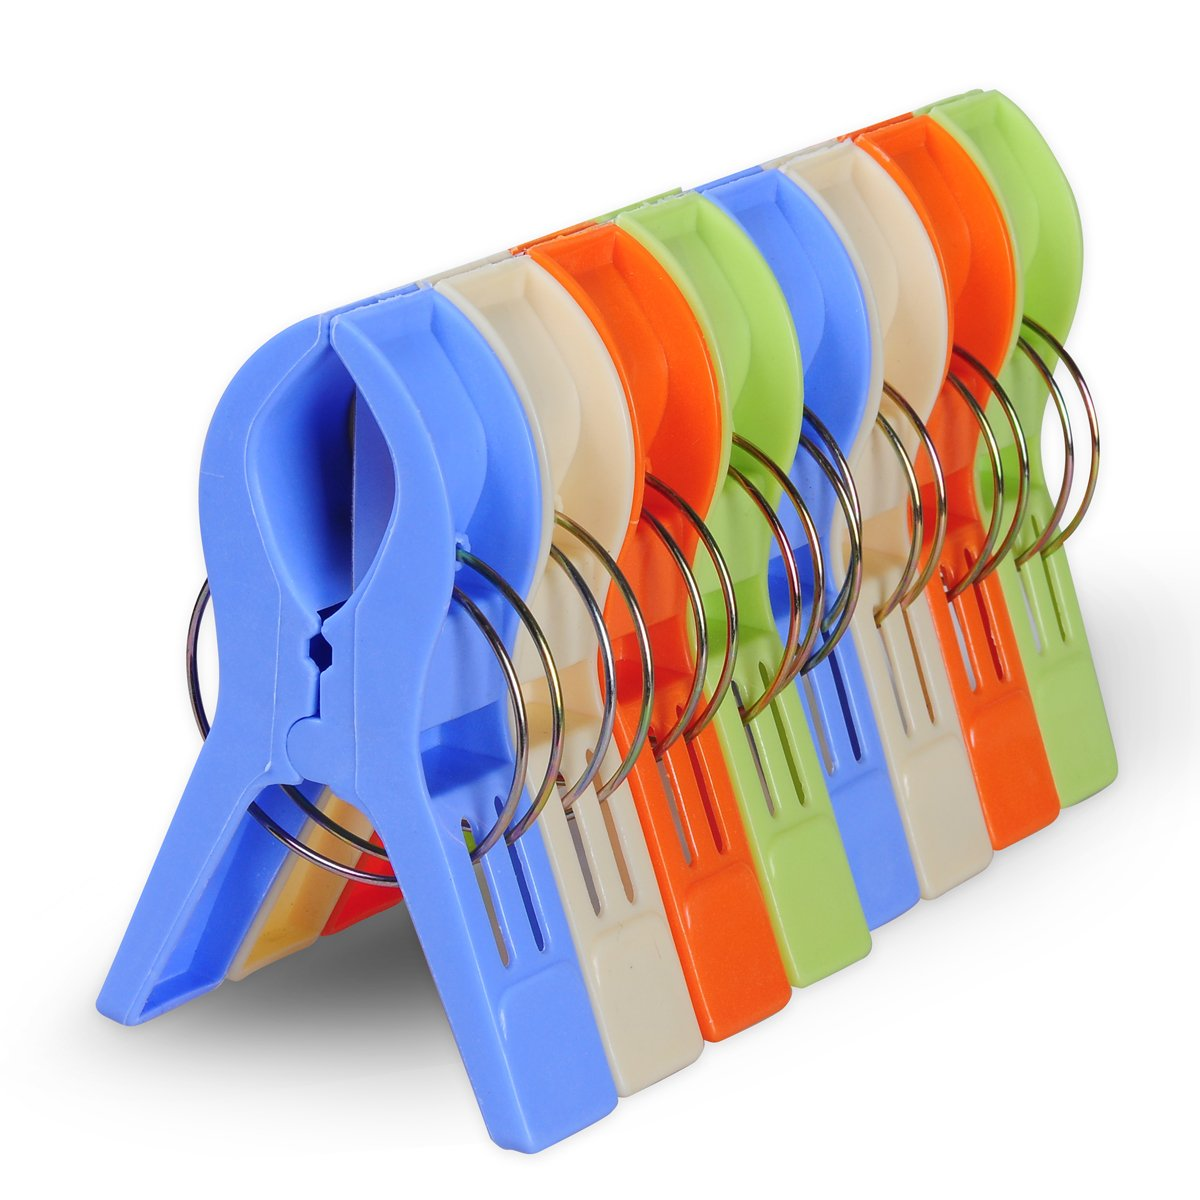 Beach Chair Clips We Accept All Major Credit Cards Amazon Payments And